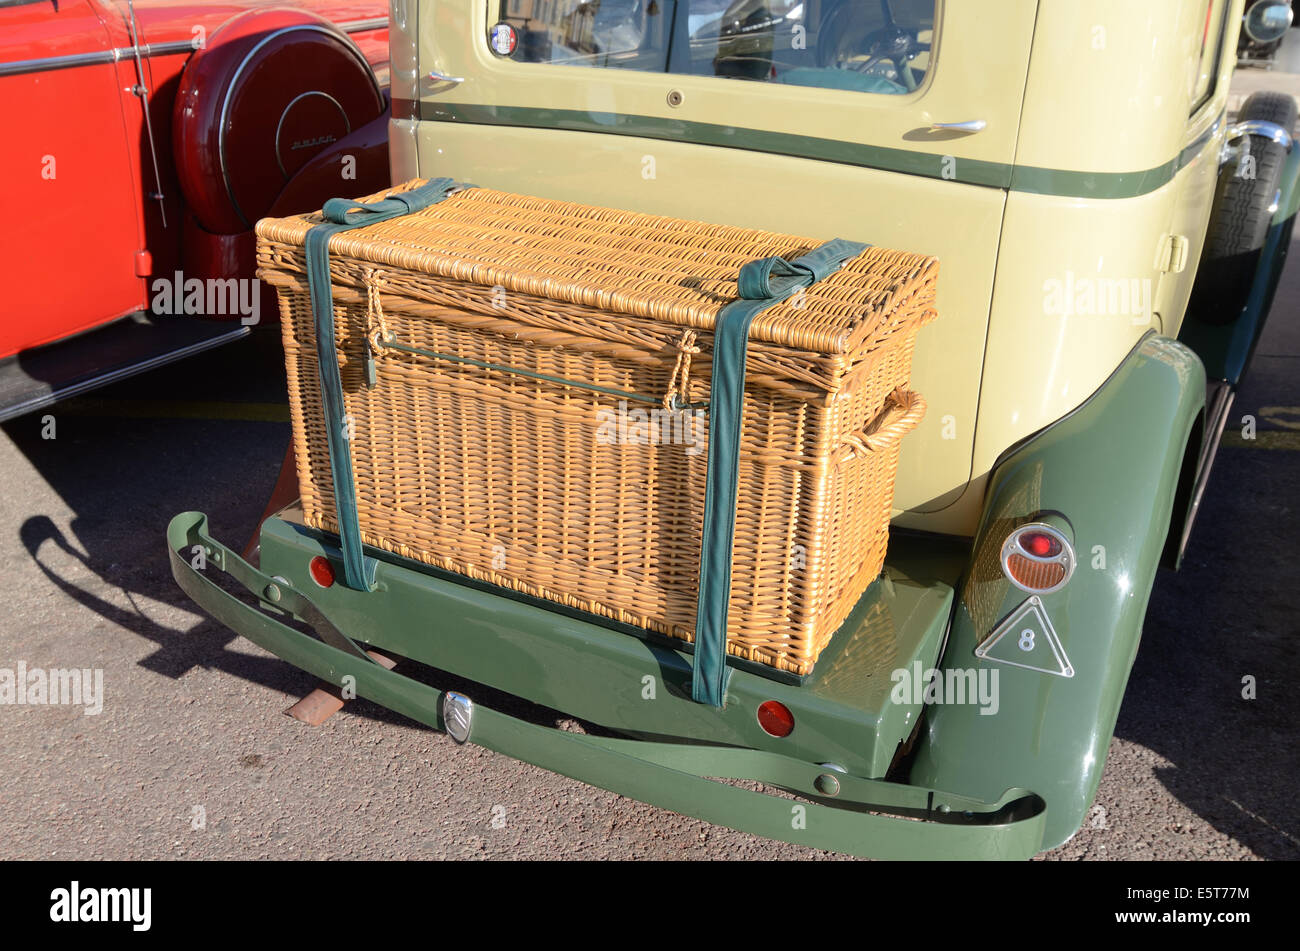 Vintage Wicker Luggage Basket on Rear of Veteran 1933 Citroën or Citroen Rosalie Car or Automobile Saint Tropez - Stock Image